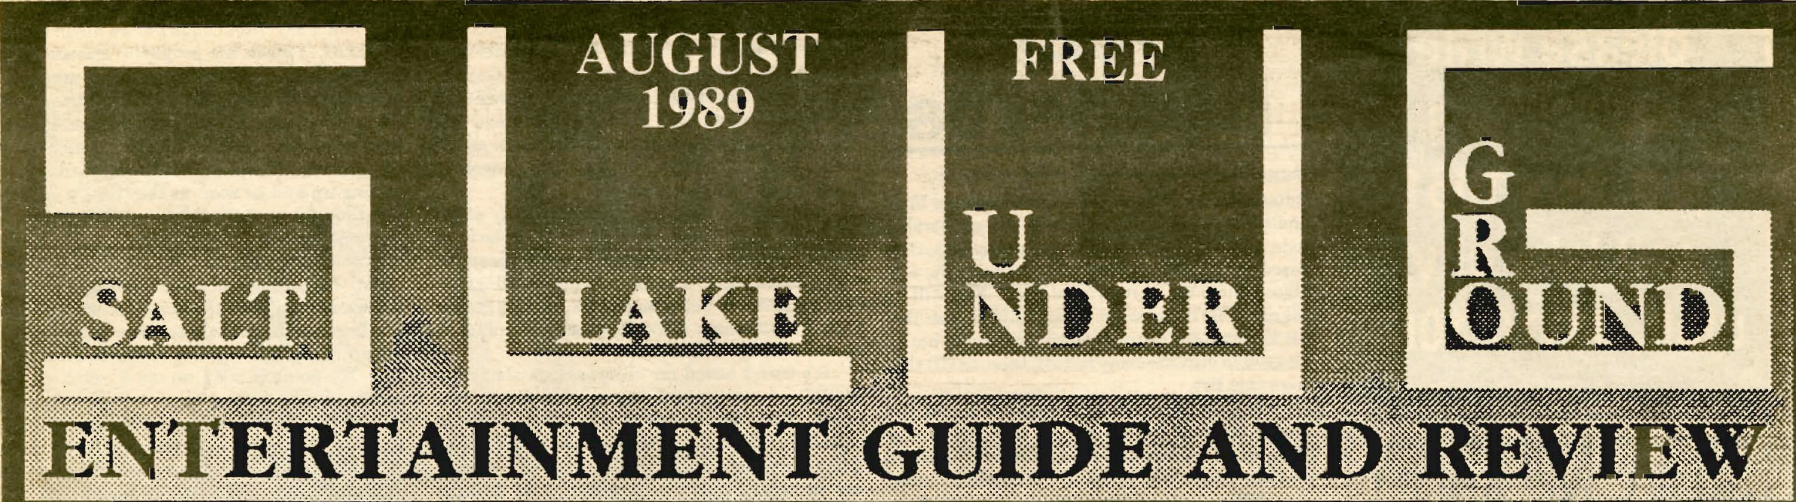 August 1989 Record Reviews featuring Bad Yodelers, Better Way, Truce and The Stench. Don't miss out on some classics!